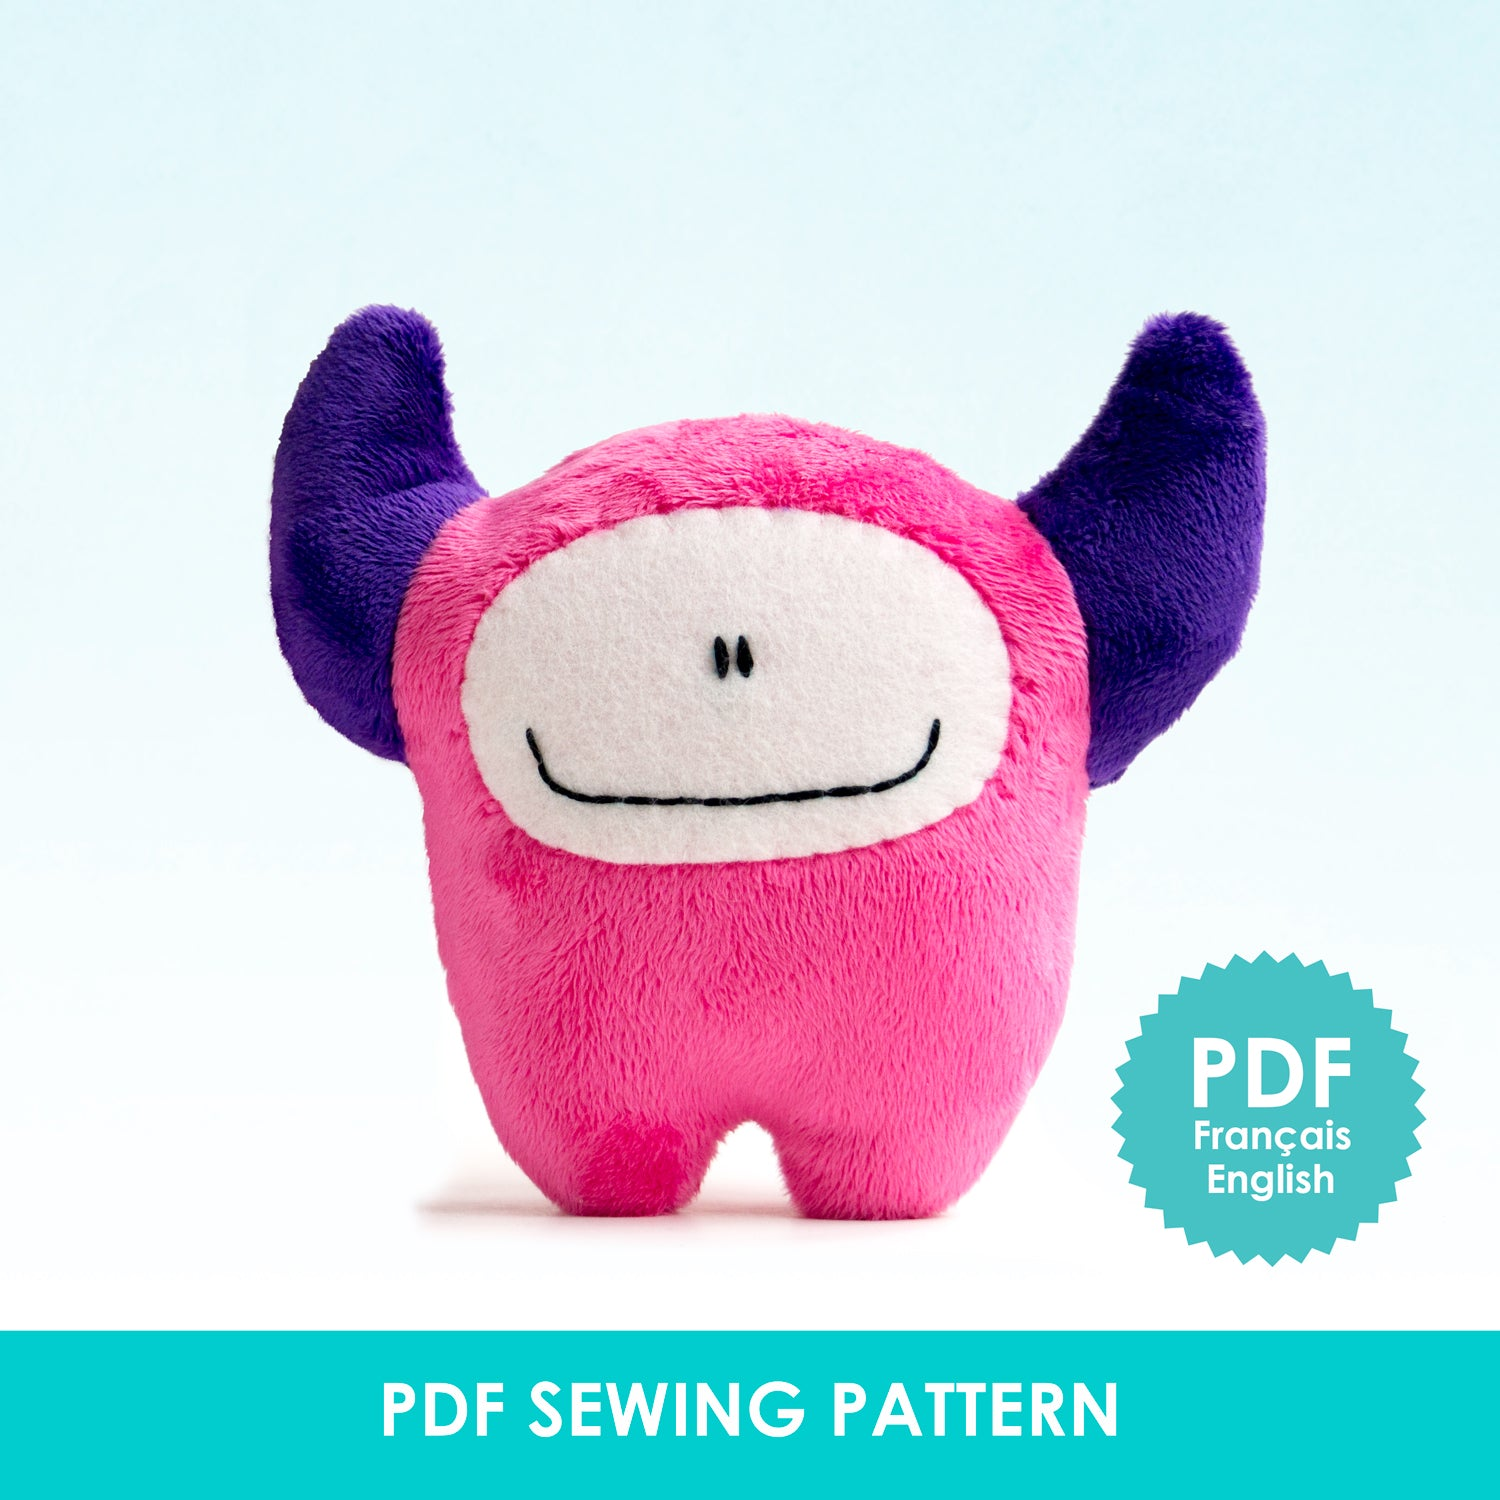 PDF Sewing Pattern - Pink monster